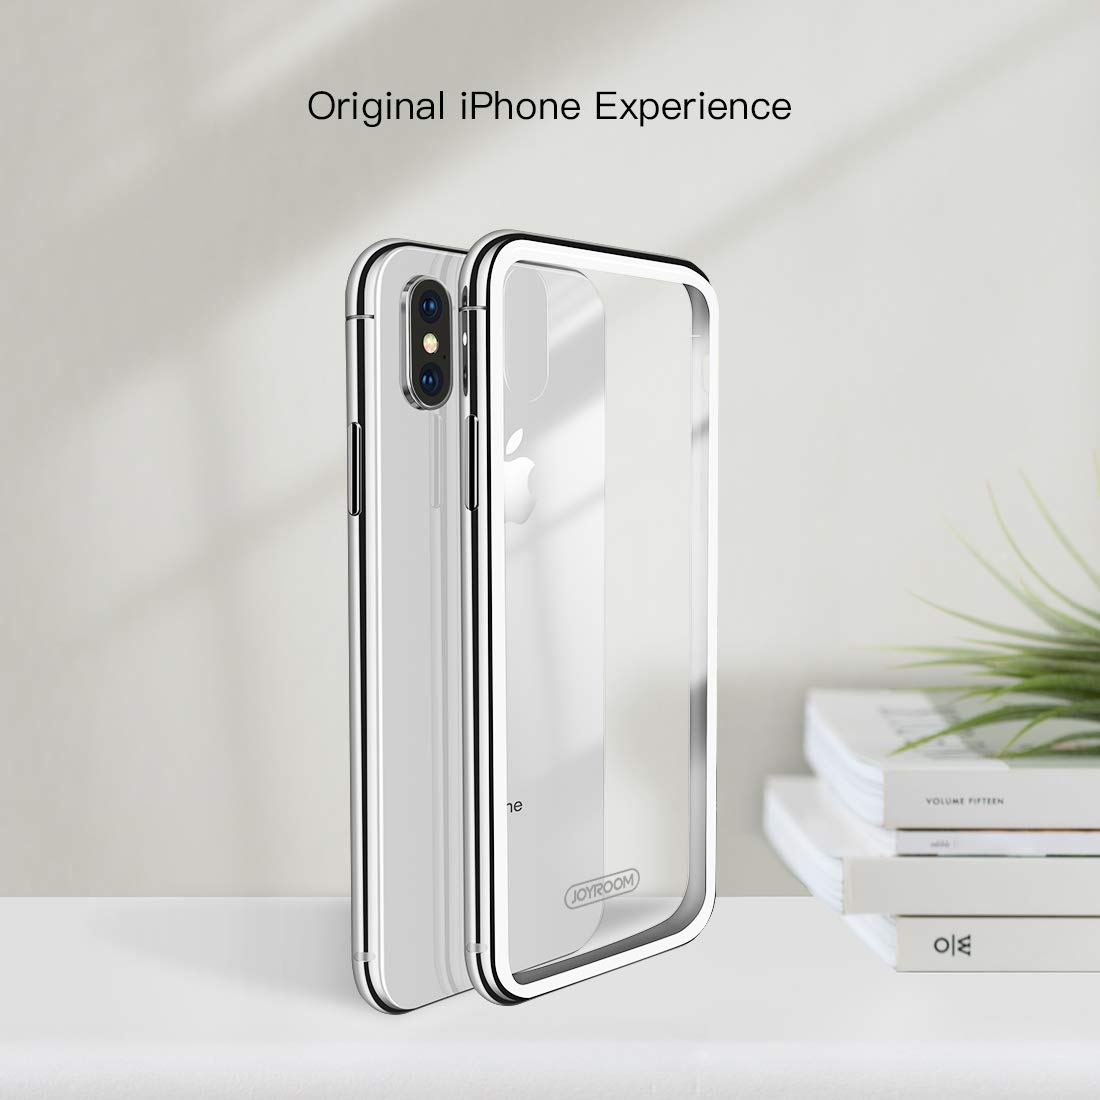 JOYROOM Crystal Clear Glass Case for iPhone Xs/iPhone X, Hard Slim Thin Metal Bumper with Soft TPU Inner Frame Case, Anti-Scratch 9H Glass Back Cover for iPhone 5.8 inch (White)